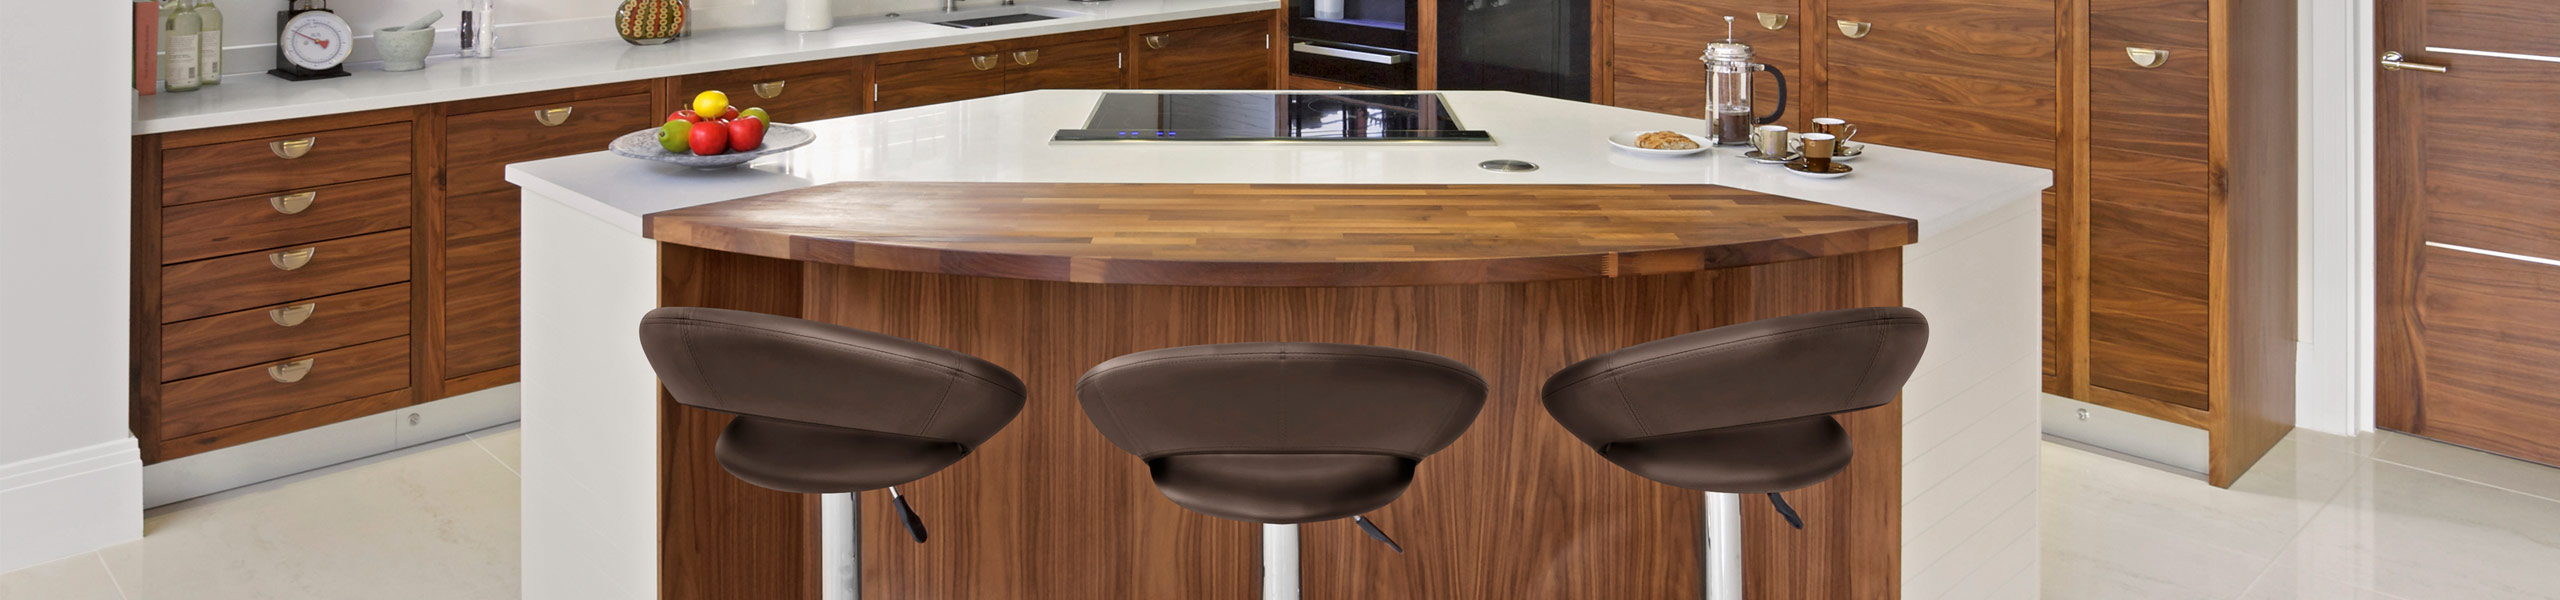 Padded Crescent Bar Stool Brown Video Banner